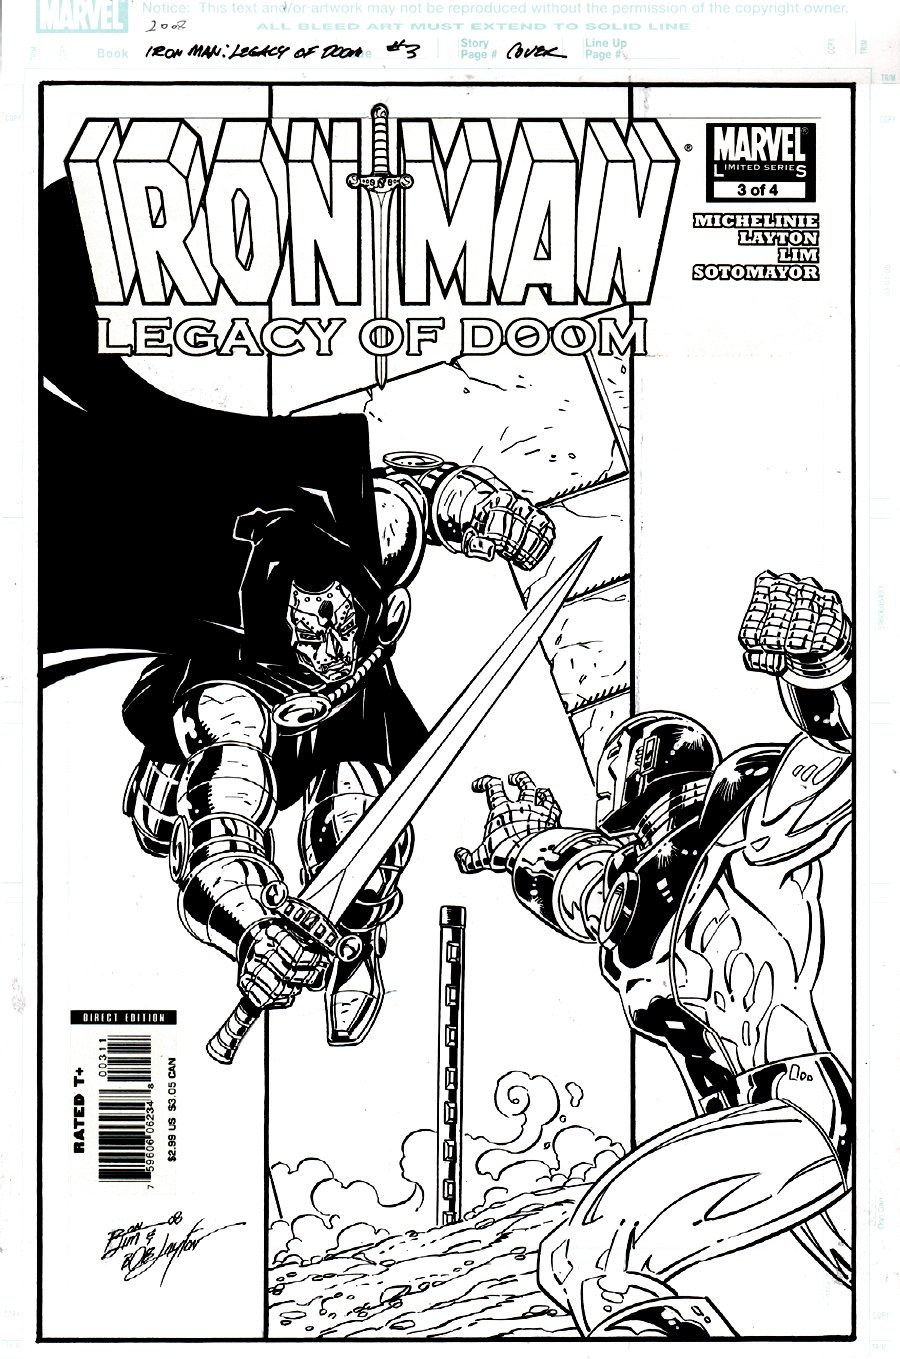 Iron Man: Legacy of Doom #3 Cover (DOOM VS IRON MAN, BOB LAYTON INKS!) 2008